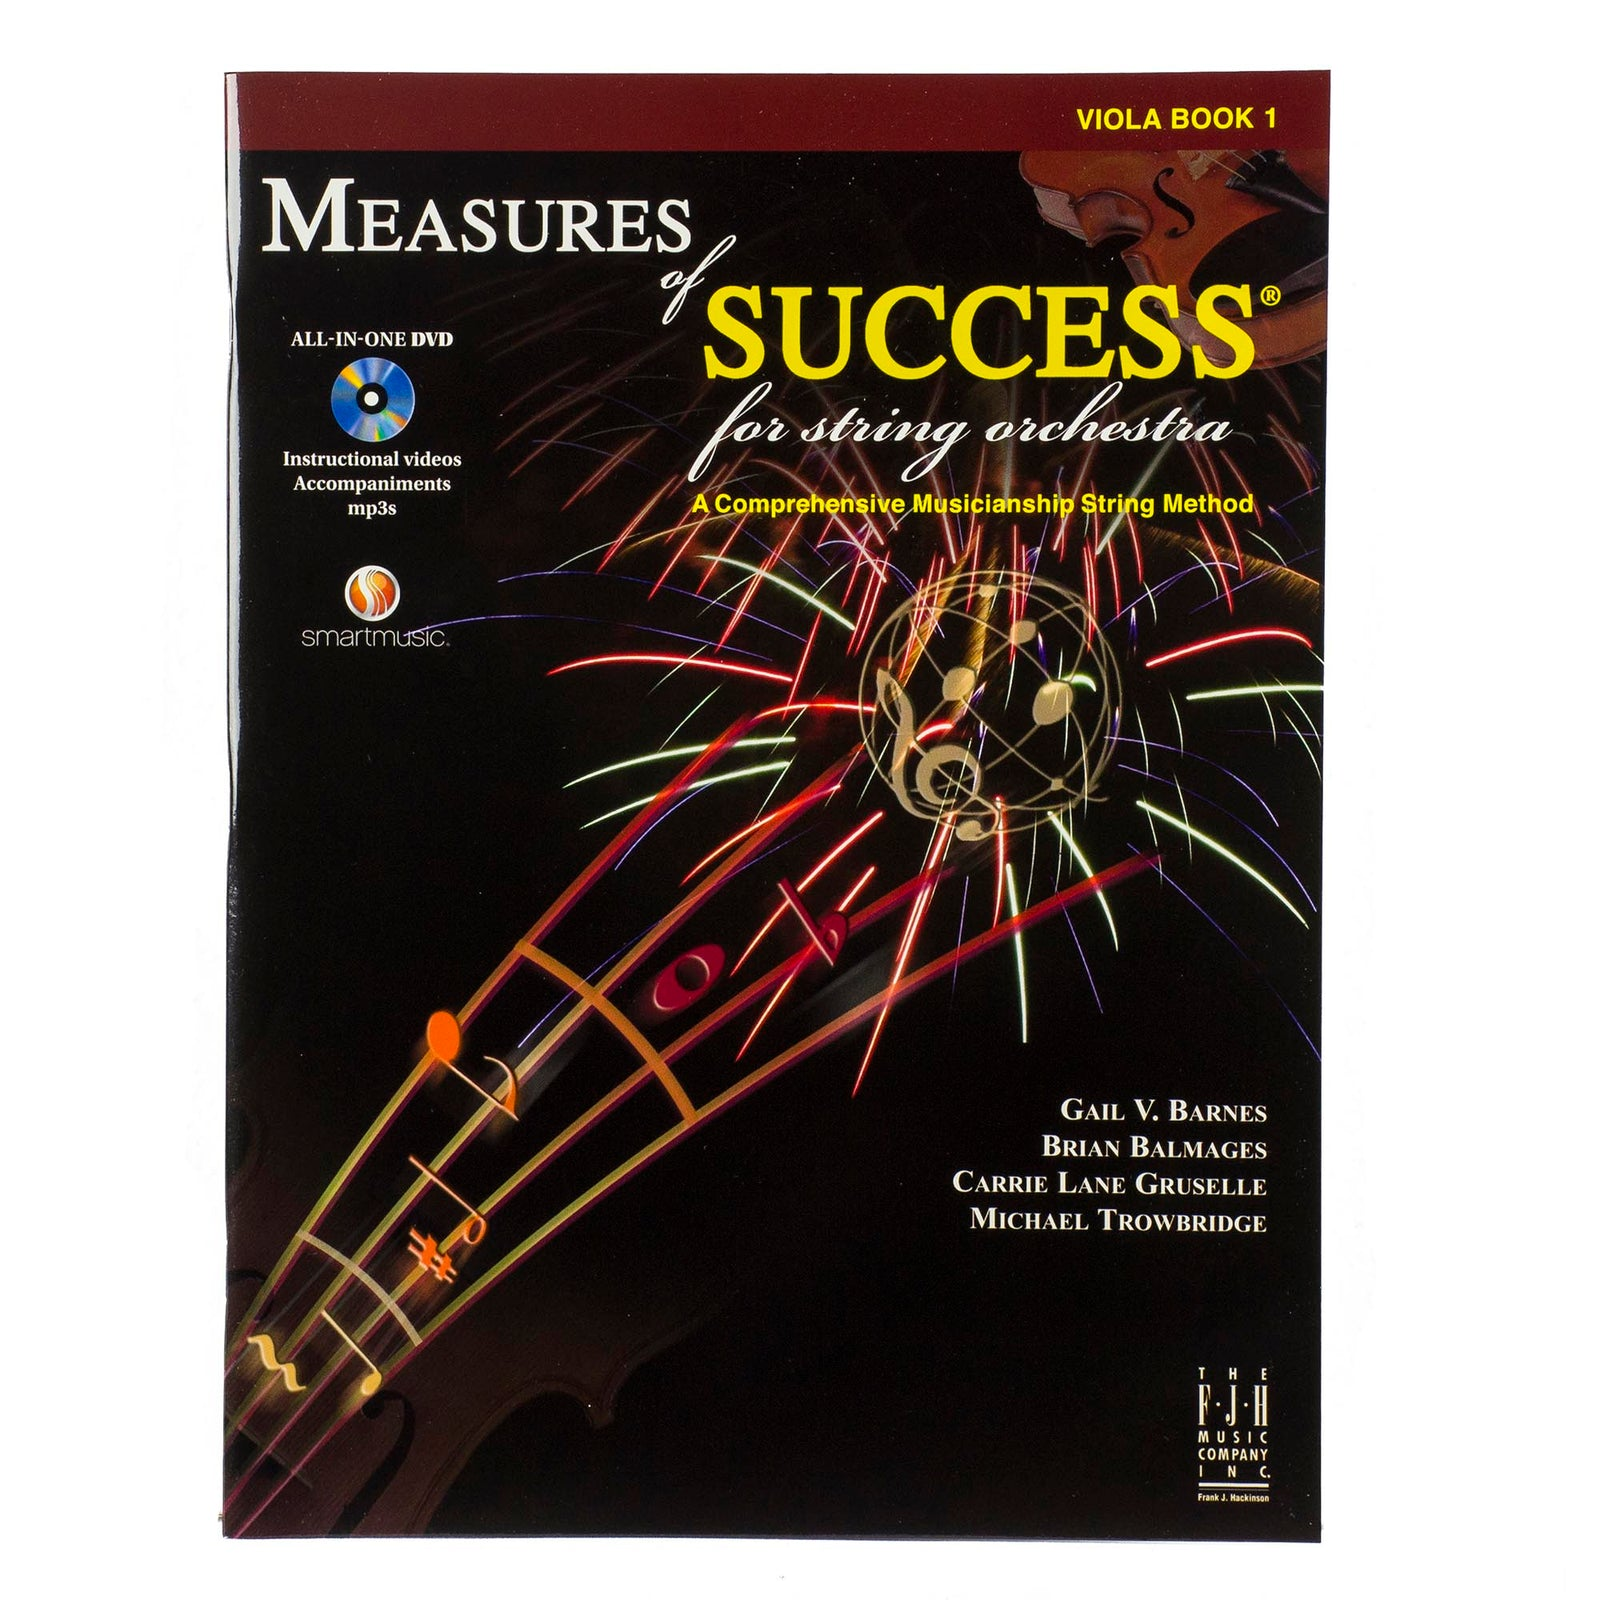 Measures Of Success For String Orchestra - Viola Book 1